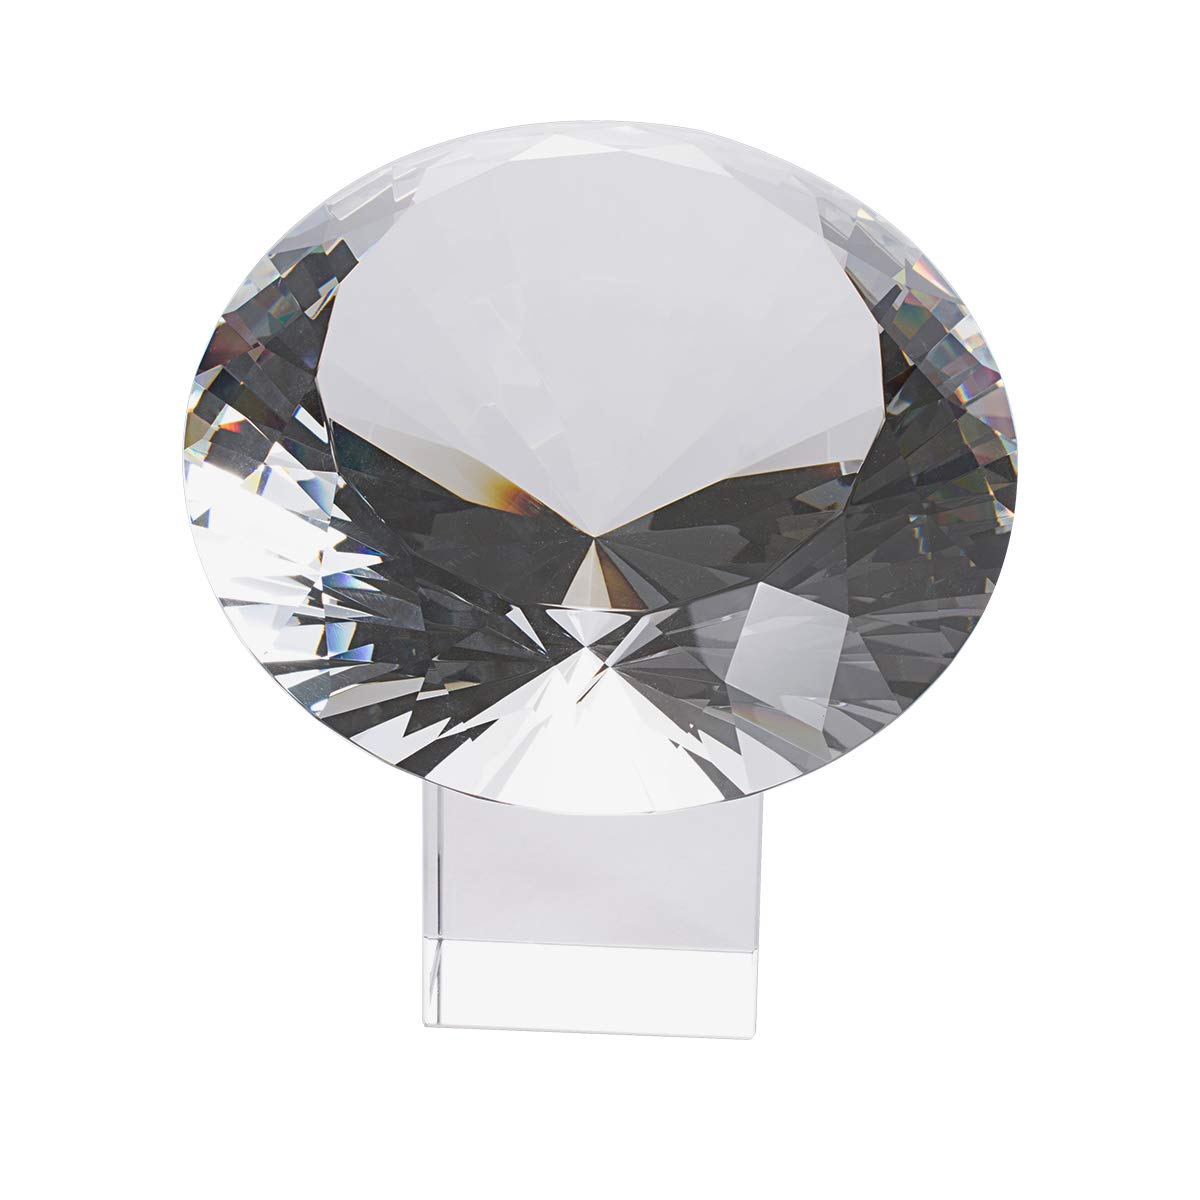 LONGWIN 200mm(8 inch) Big Crystal Diamond Paperweight Wedding Centerpiece by LONGWIN